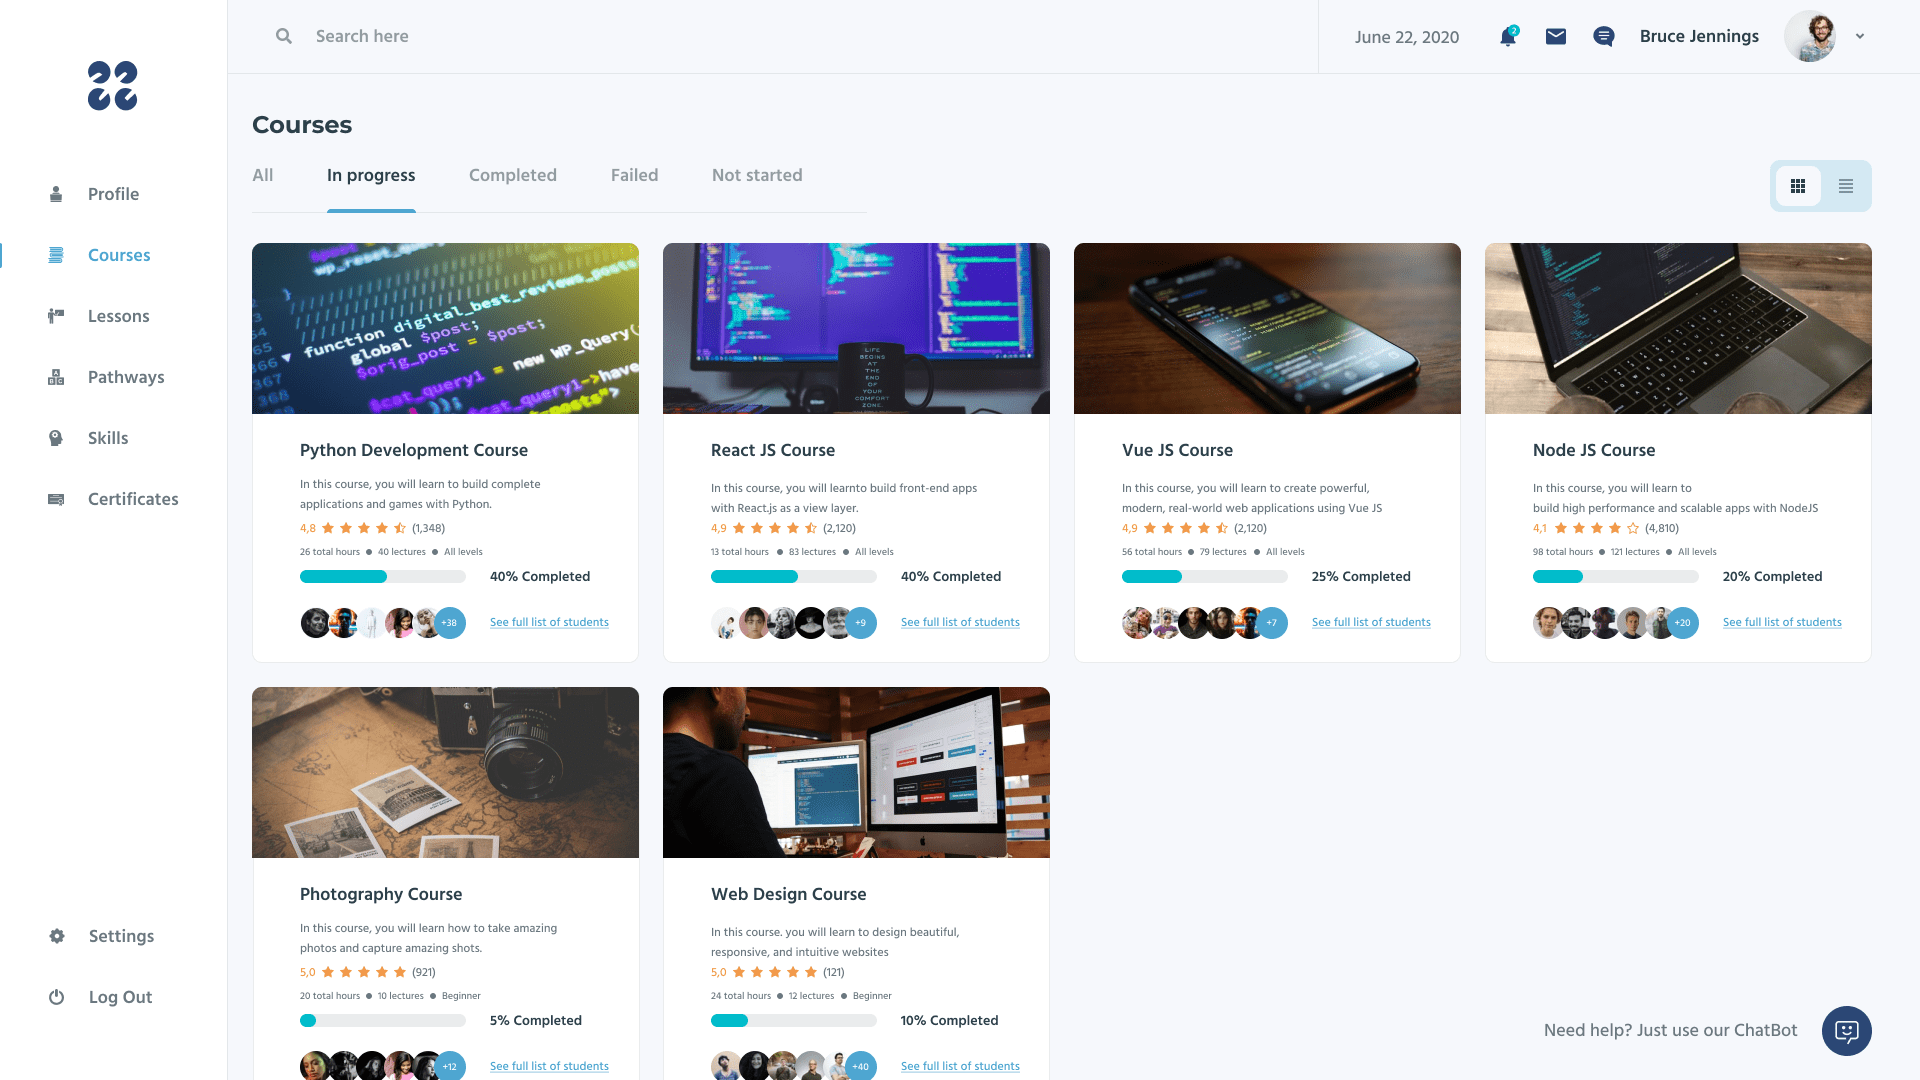 Courses page